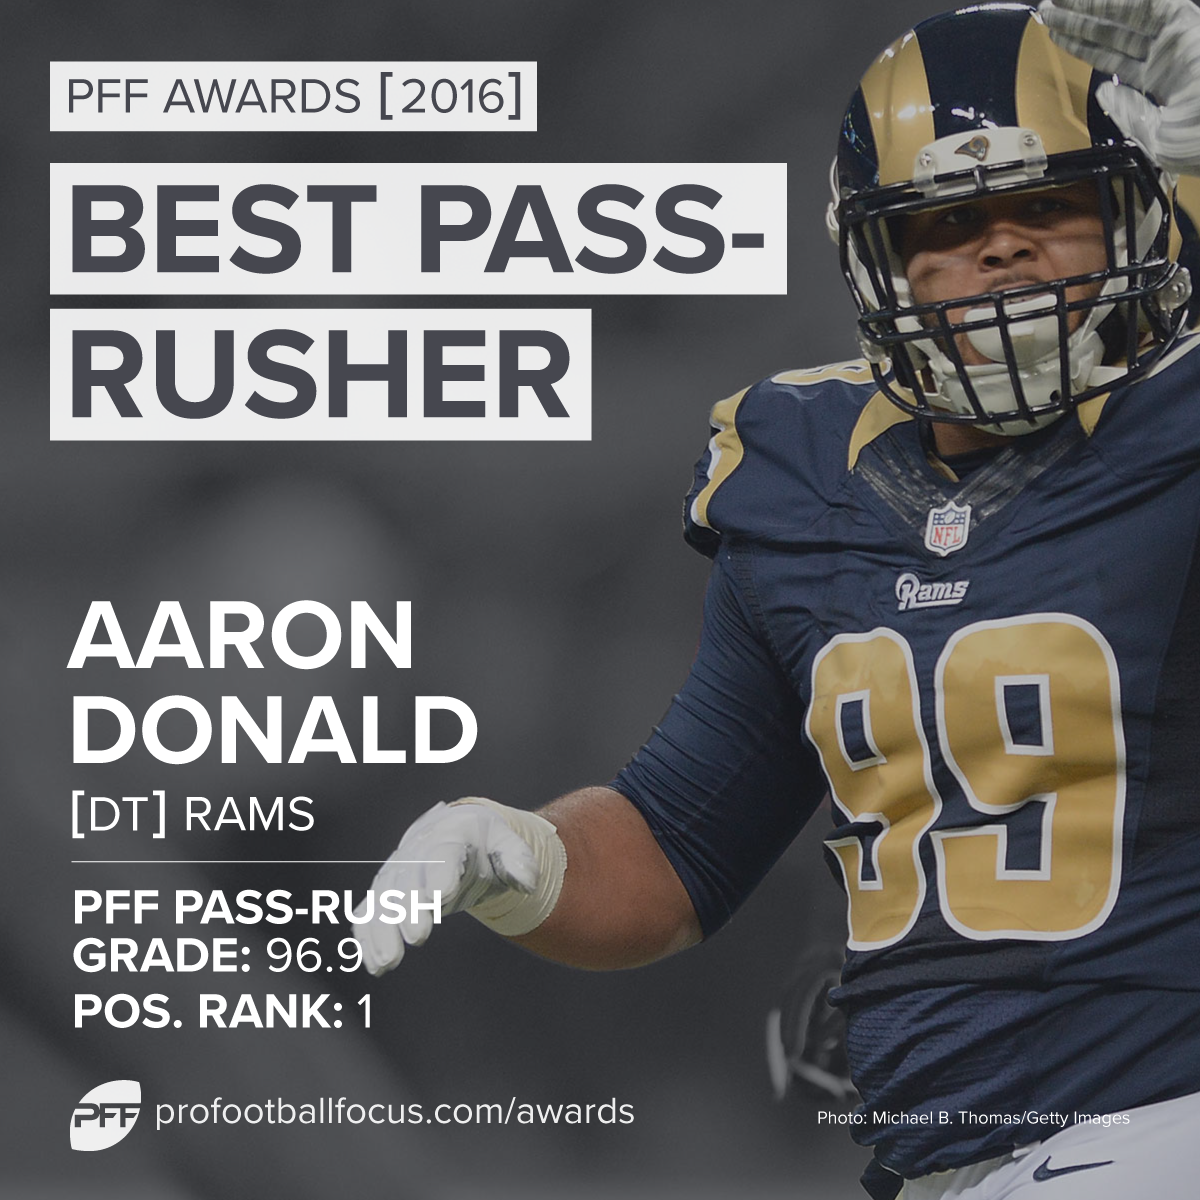 2016 PFF Best Pass-Rusher: Aaron Donald